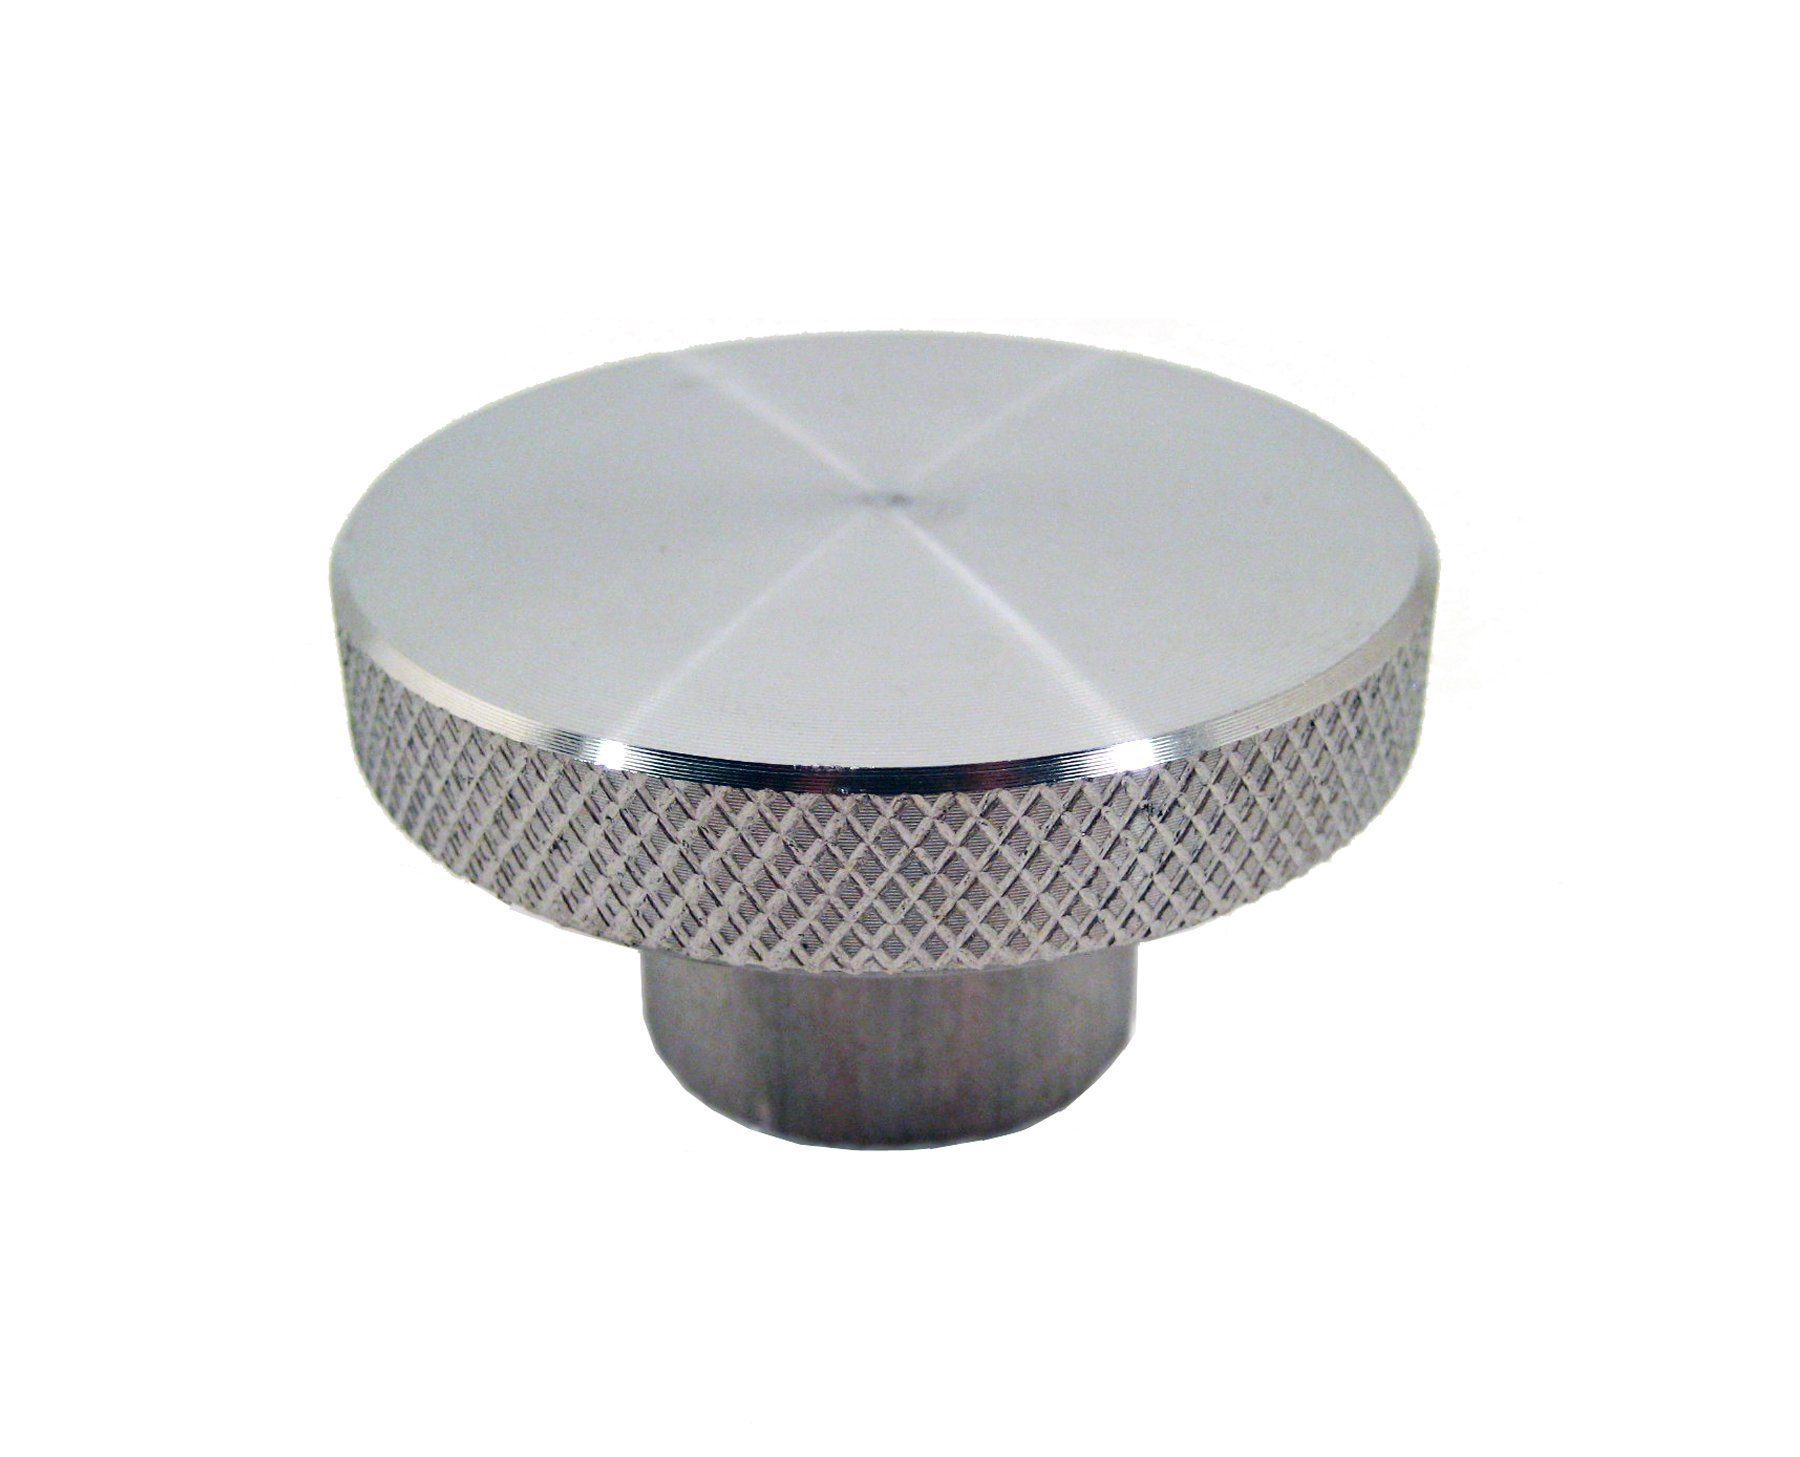 JW Winco Stainless Steel 303 Round Tapped Knob, Knurled, Threaded Hole, 5/16''-18 Thread Size x 5/8'' Thread Depth, 1-1/2'' Head Diameter (Pack of 1)